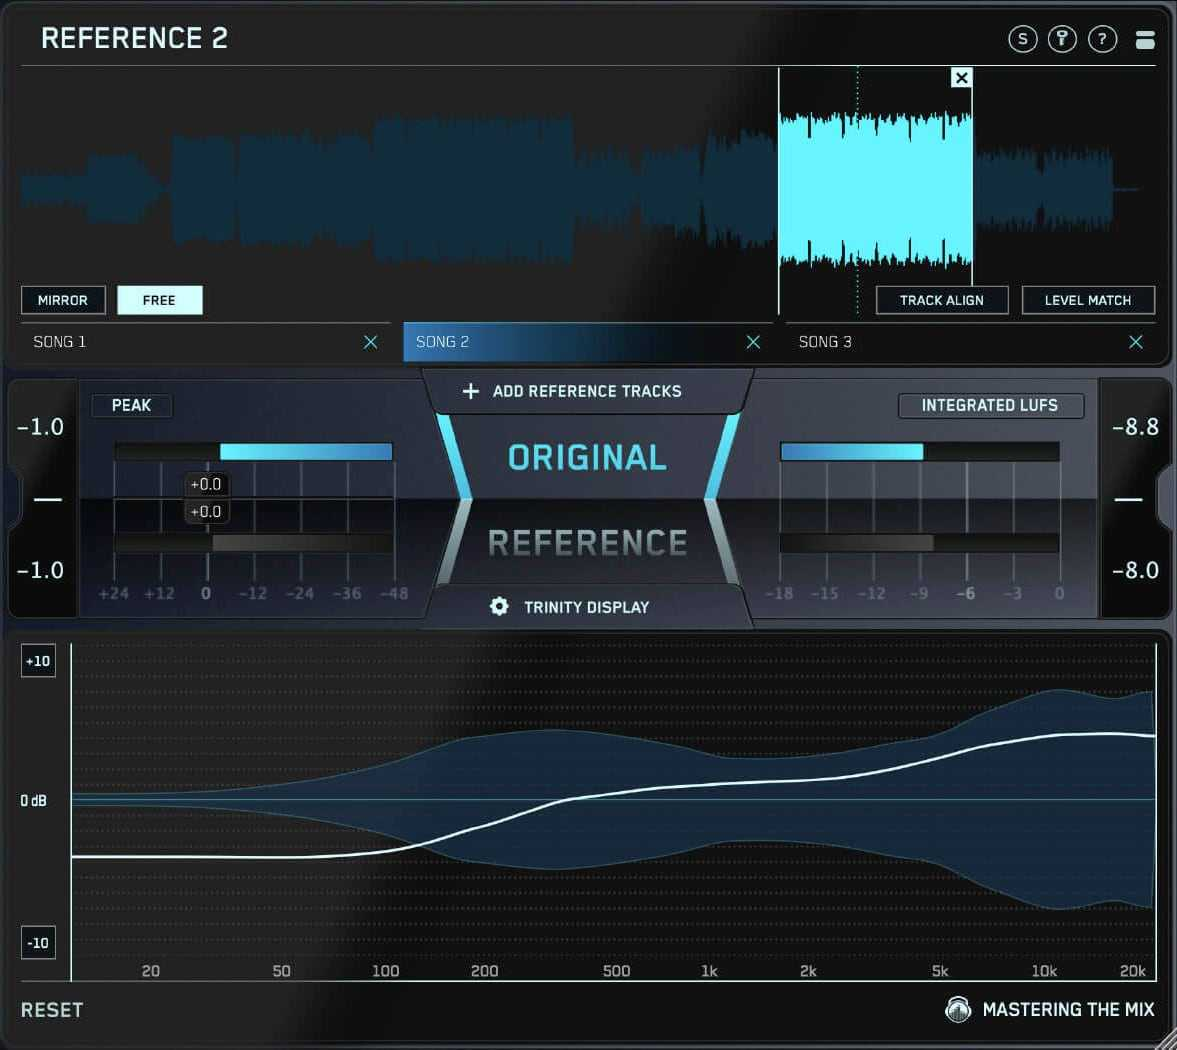 Mastering The Mix - Reference 2